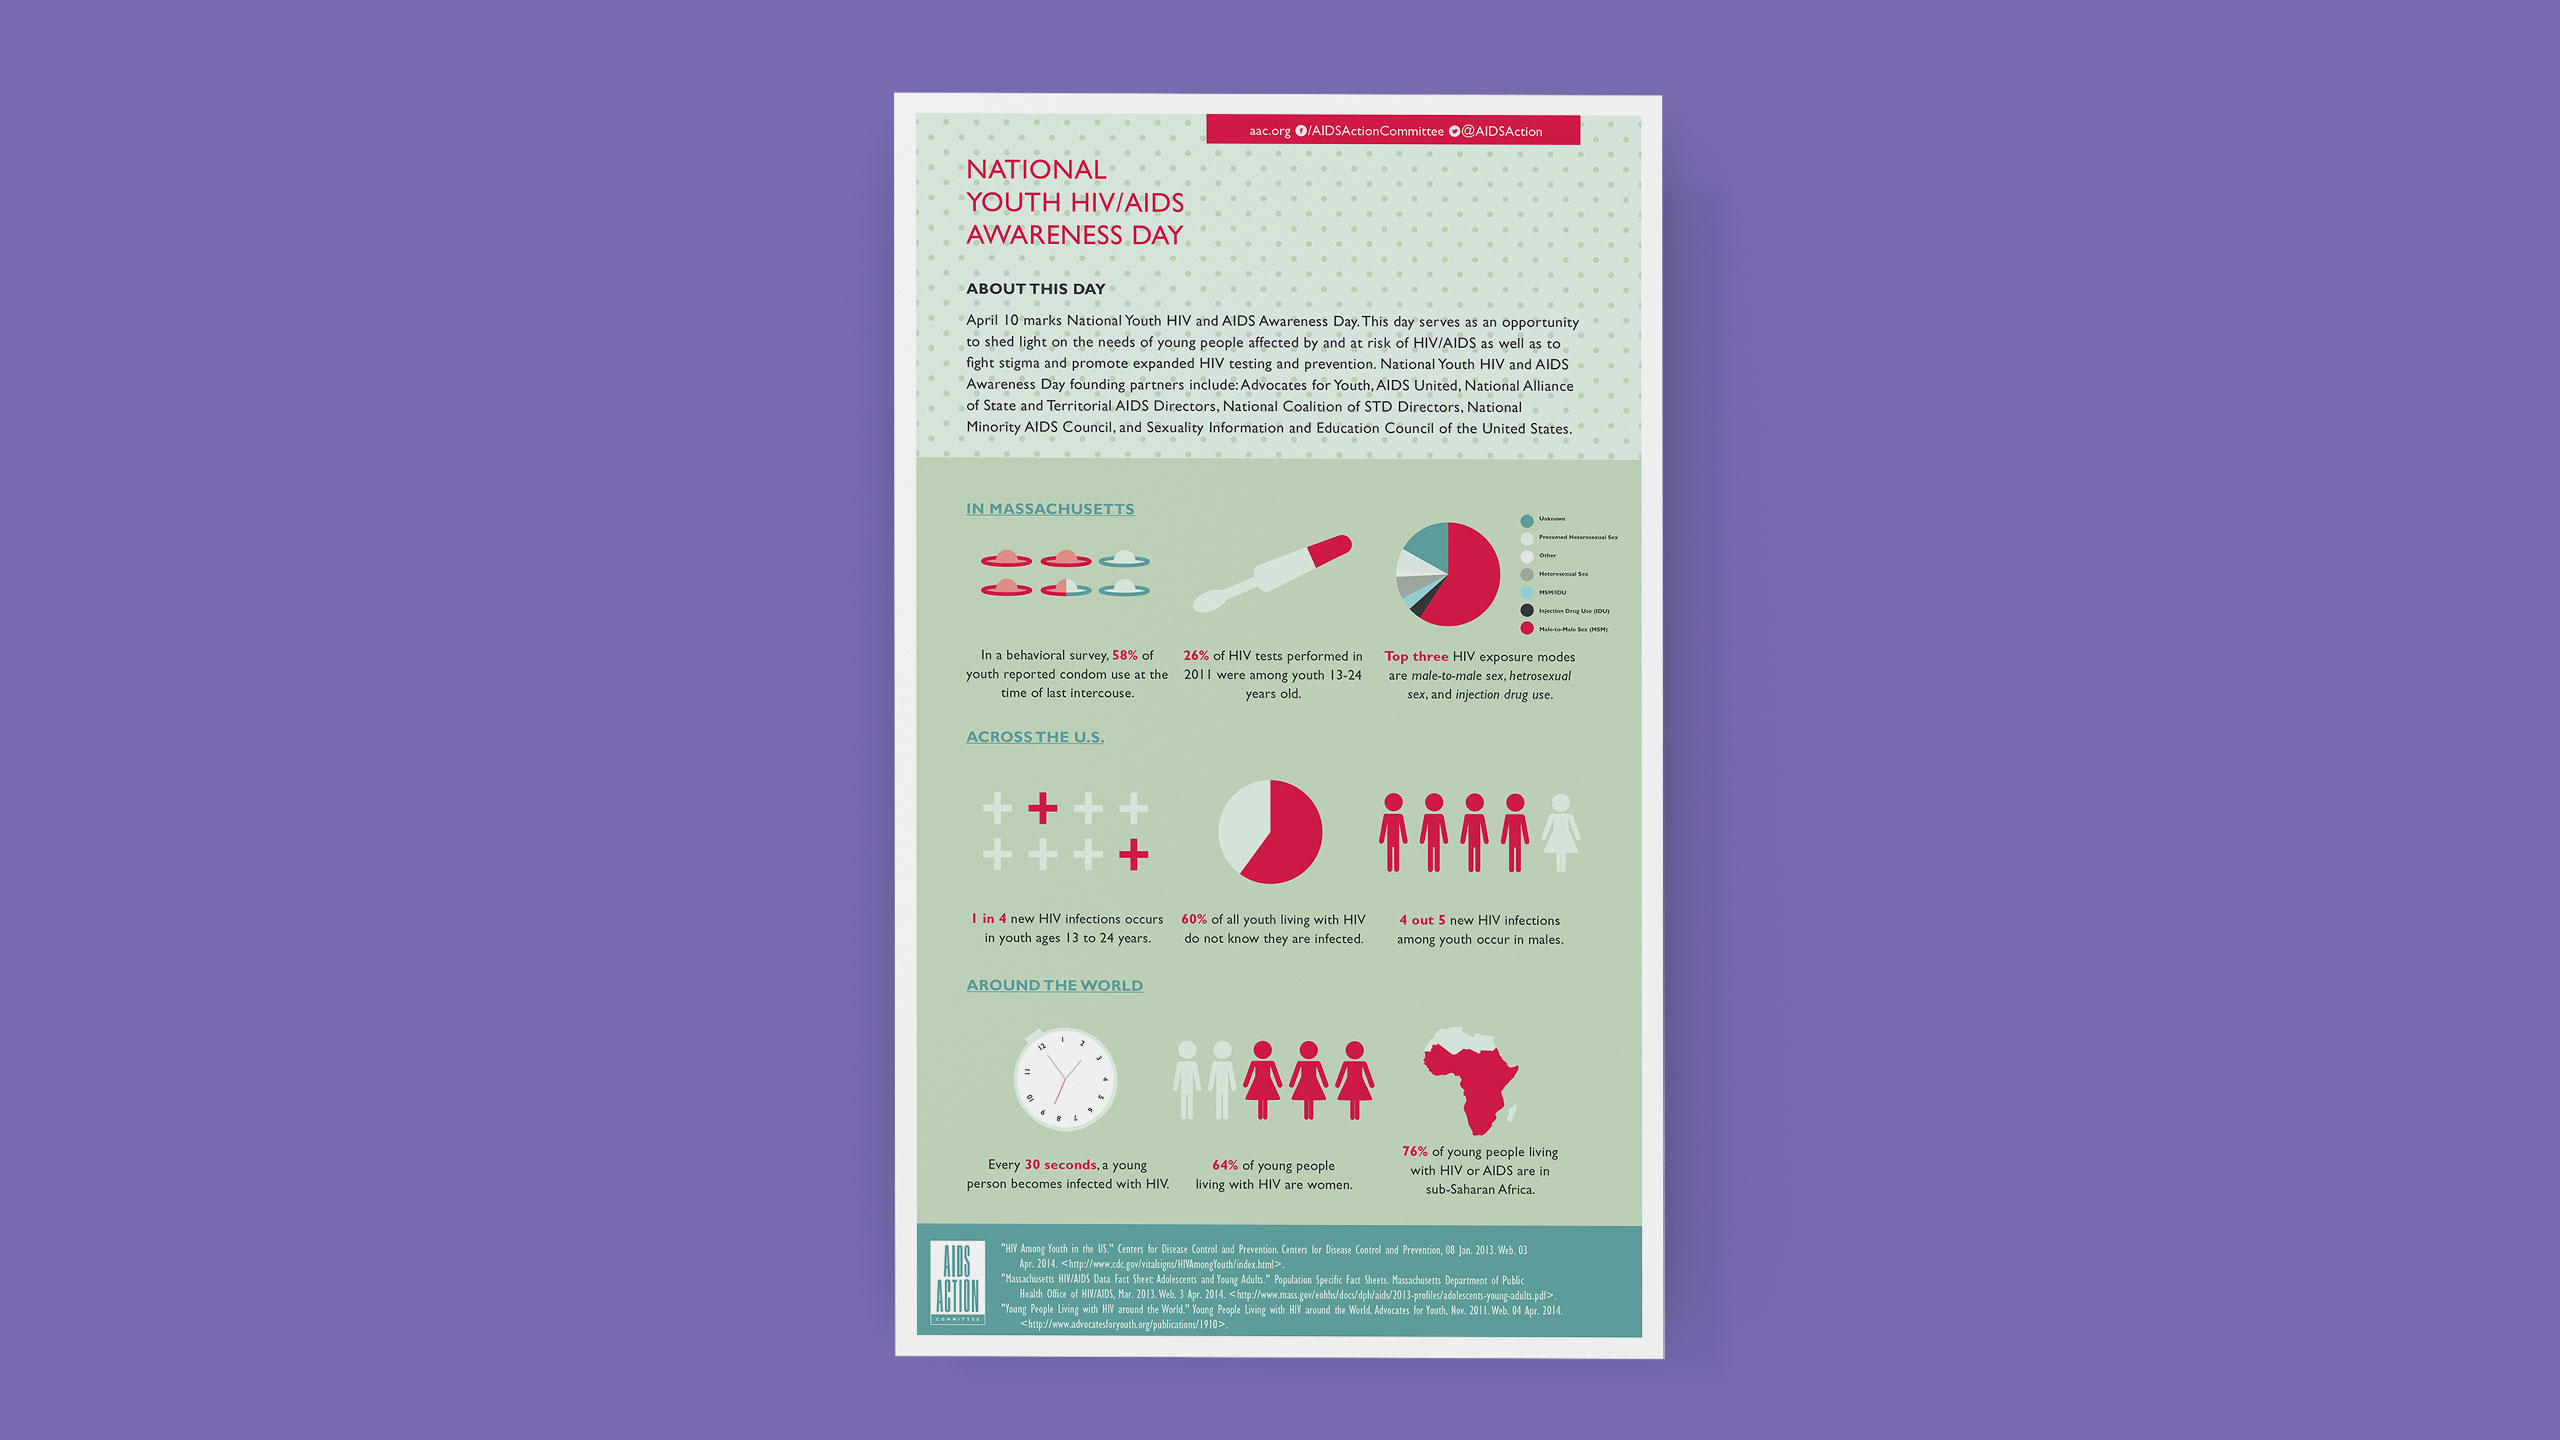 National Youth HIV/AIDS Awareness Day Infographic